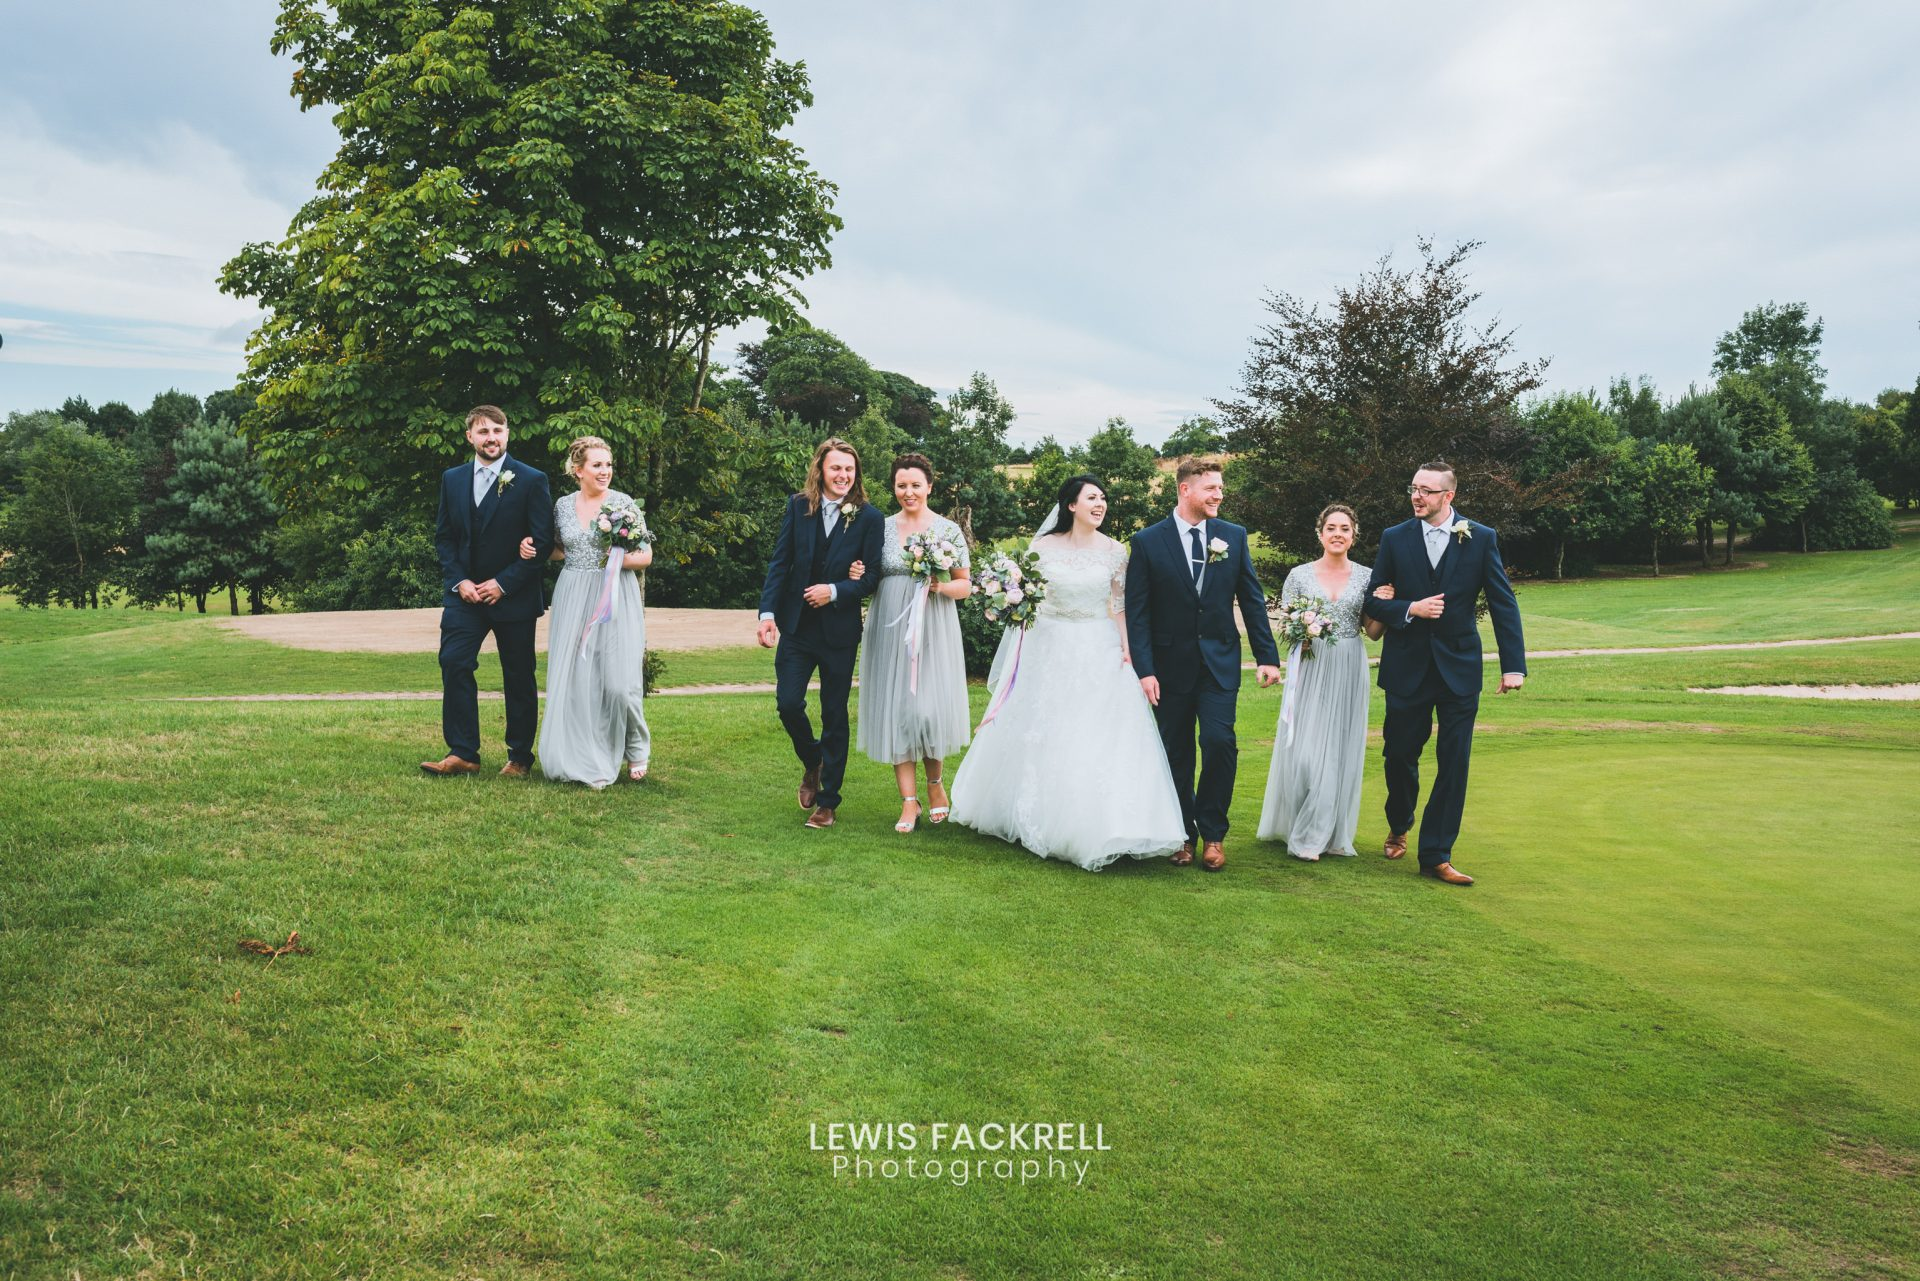 Formal group photos of bridesmaids and groomsmen